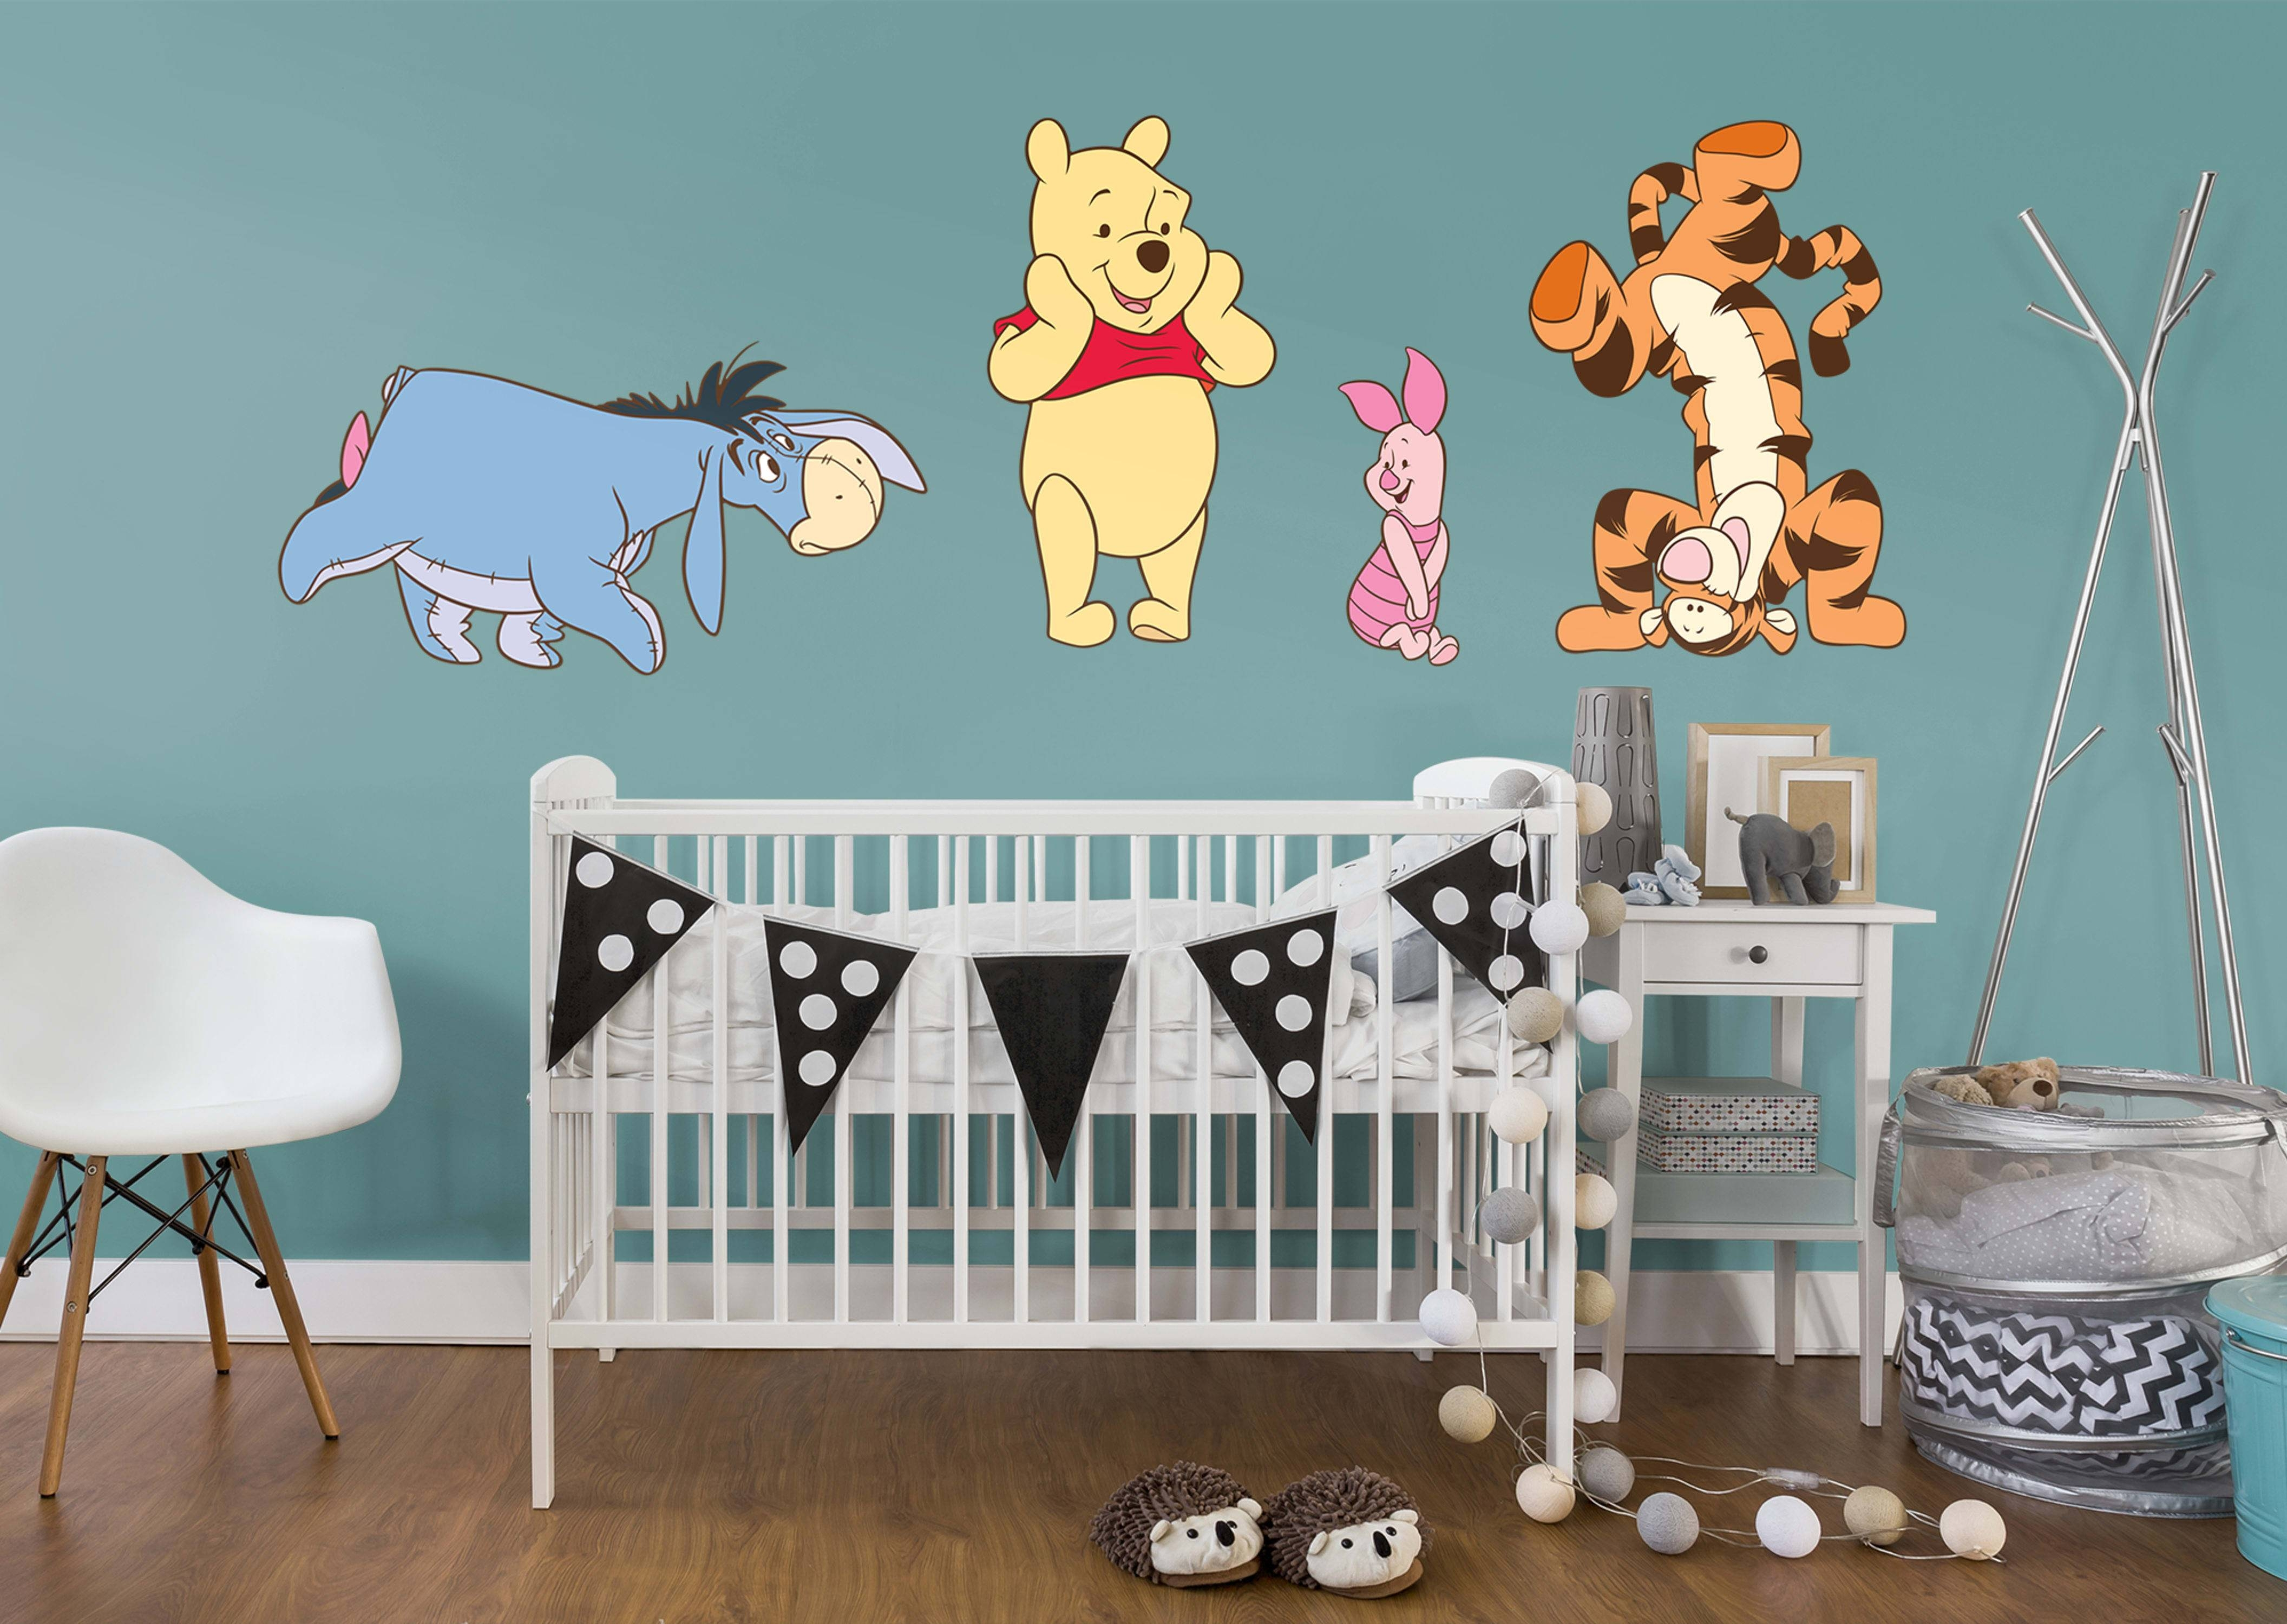 Winnie The Pooh Wall Stickers Image Collections – Home Wall With Regard To Most Popular Winnie The Pooh Wall Art (View 20 of 20)